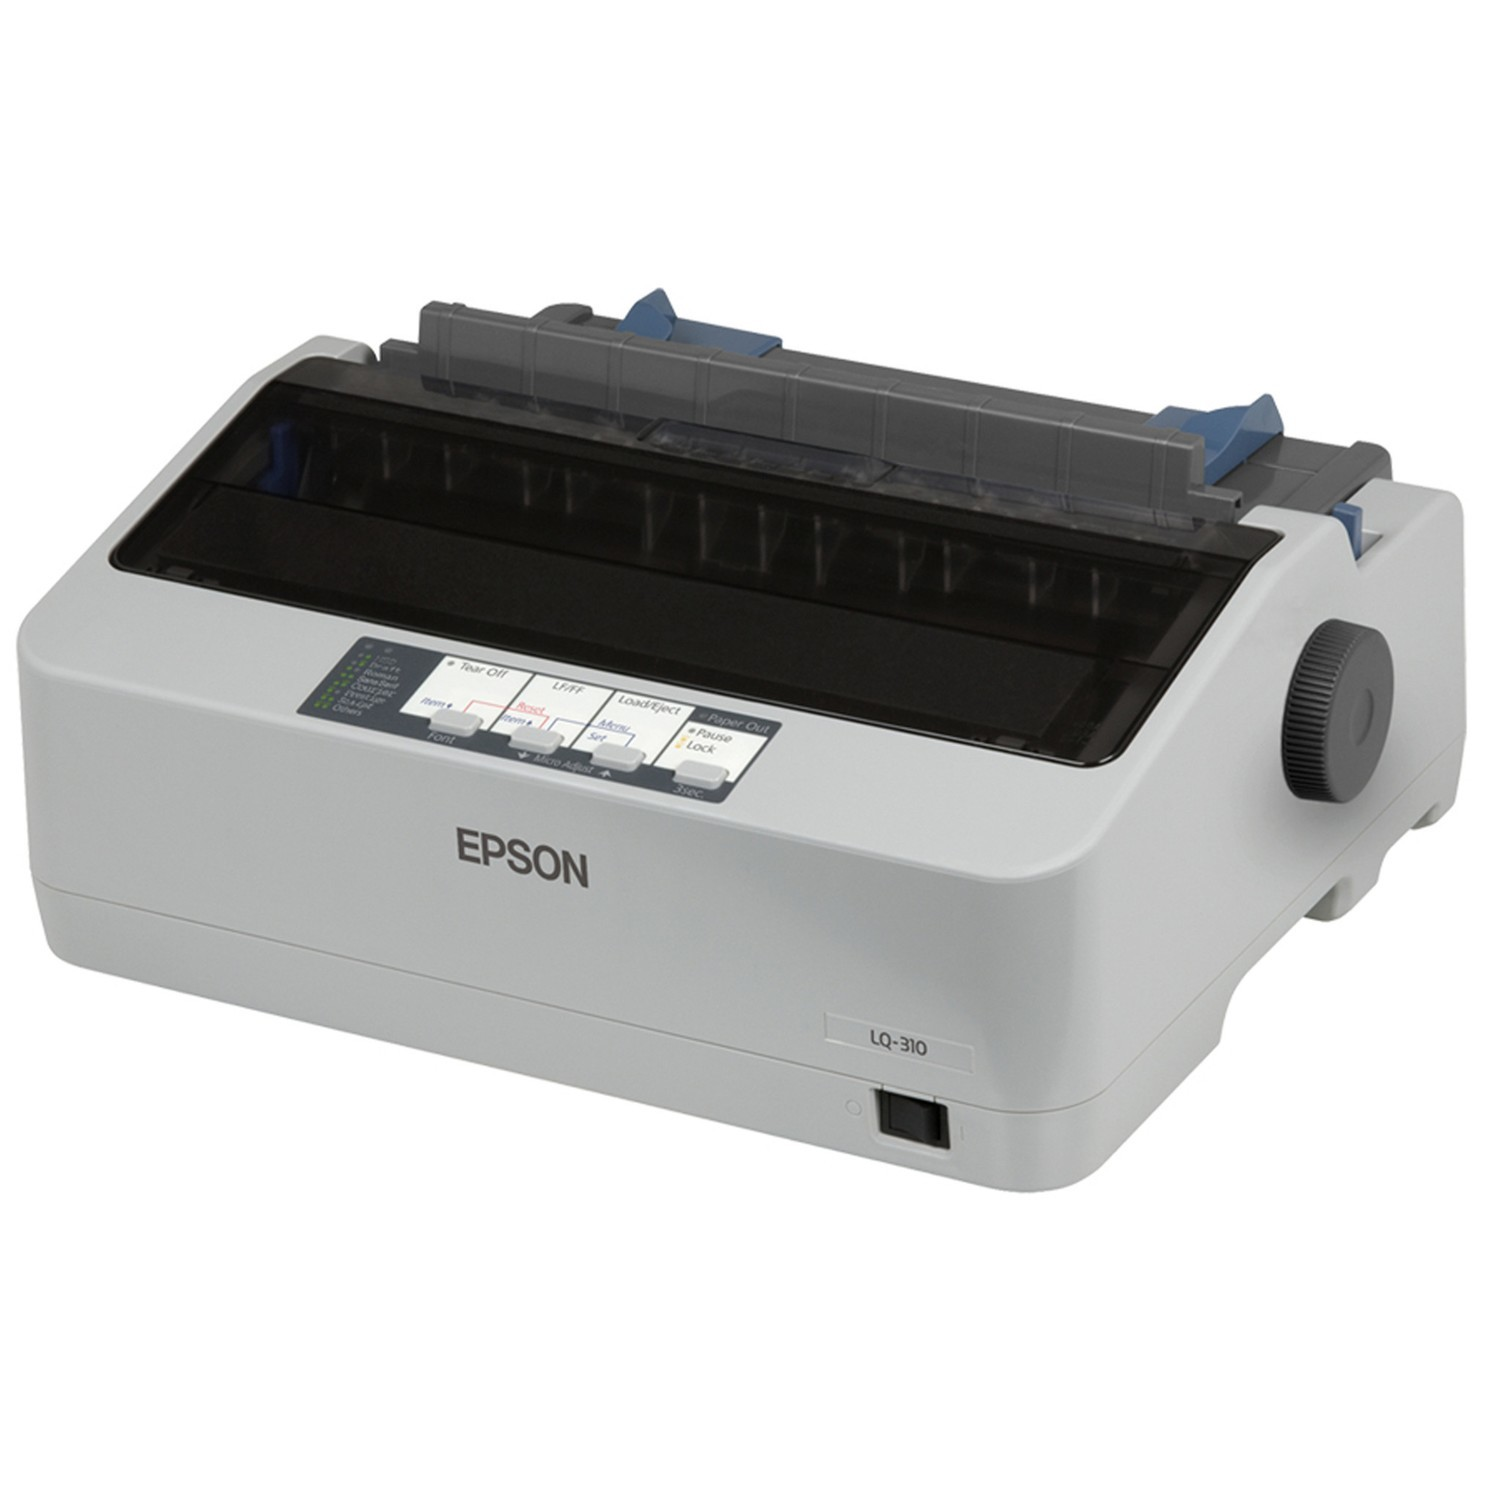 download epson lq 2190 driver for windows 10